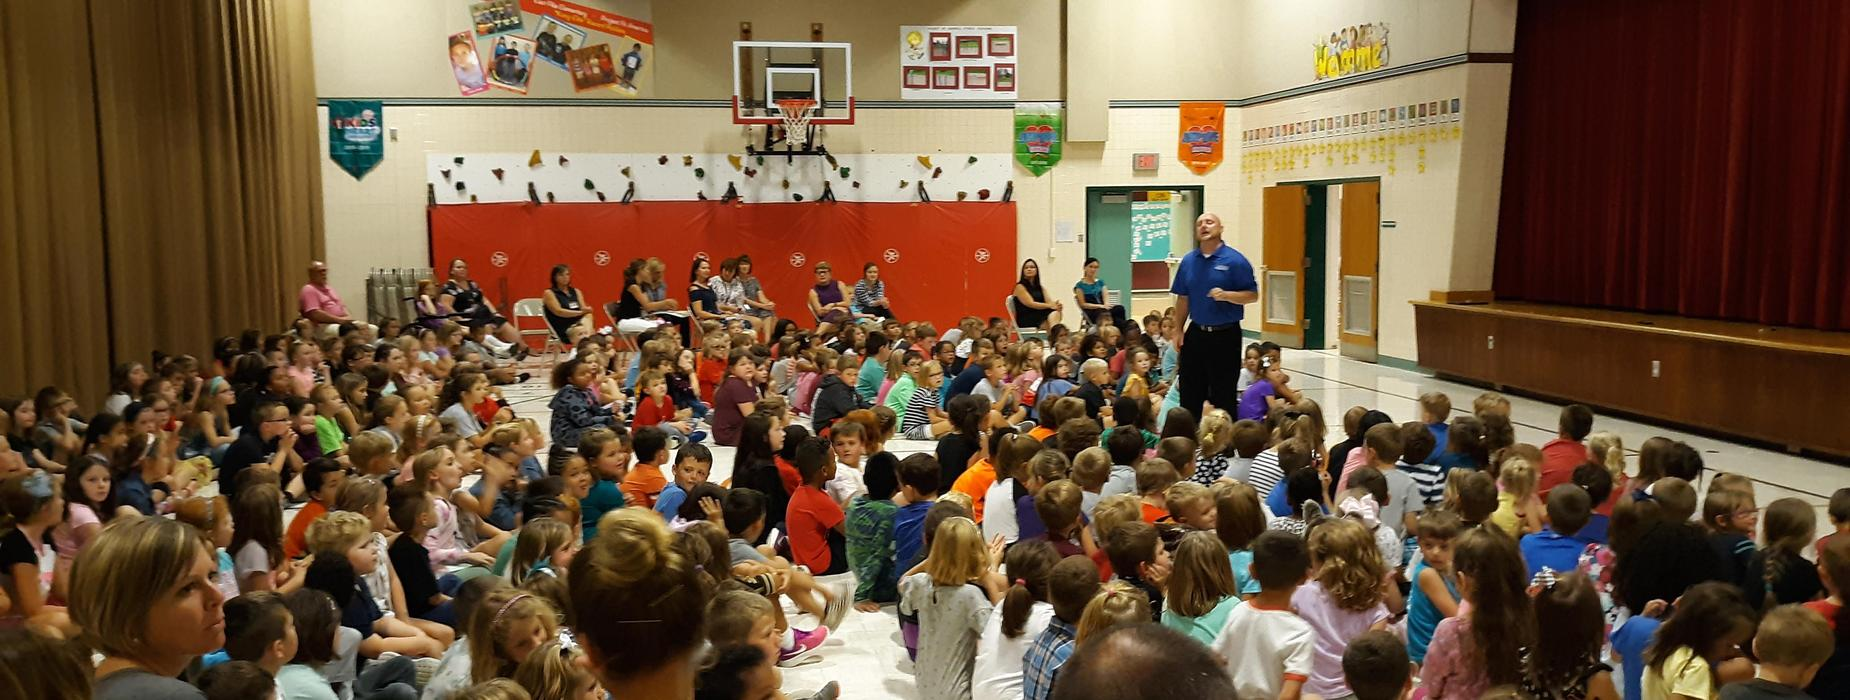 Safety Assembly with Bubba